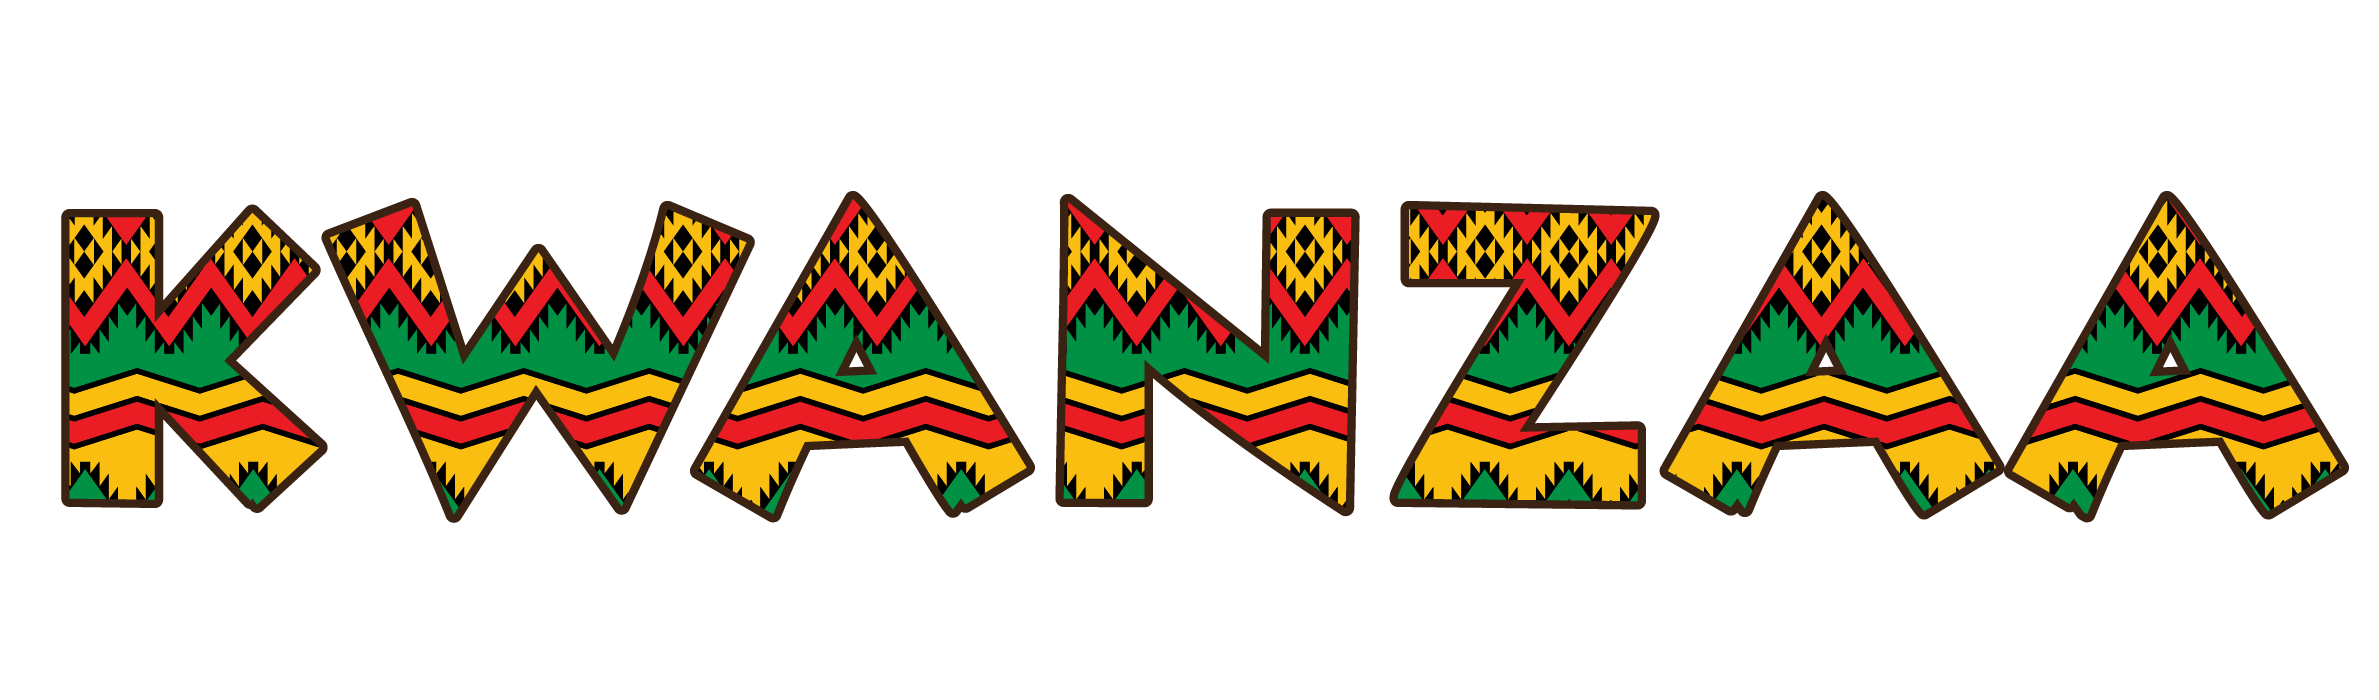 Kwanzaa clipart transparent. Design title pattern filled